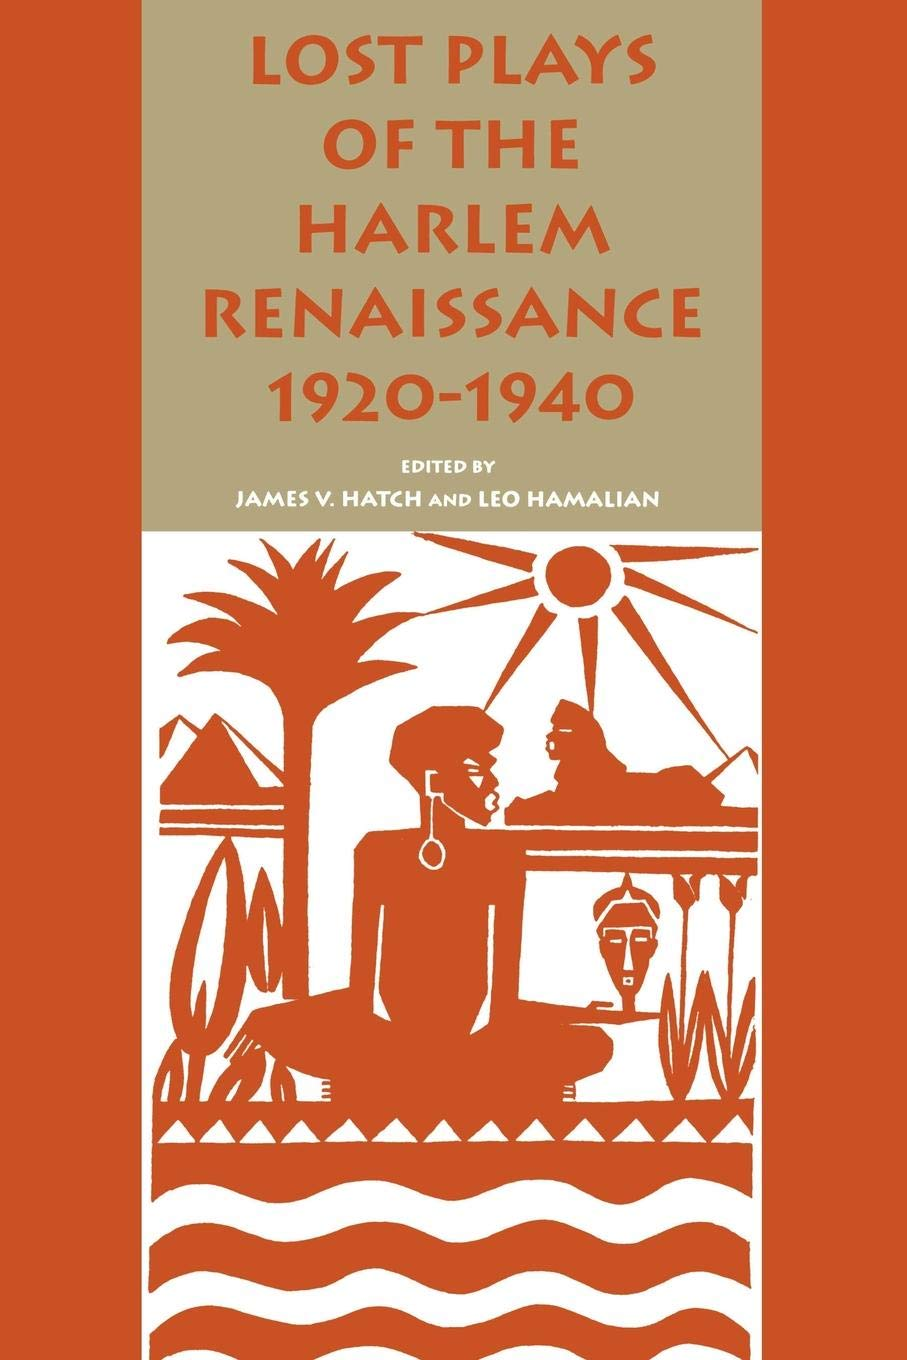 Lost Plays of the Harlem Renaissance, 1920.